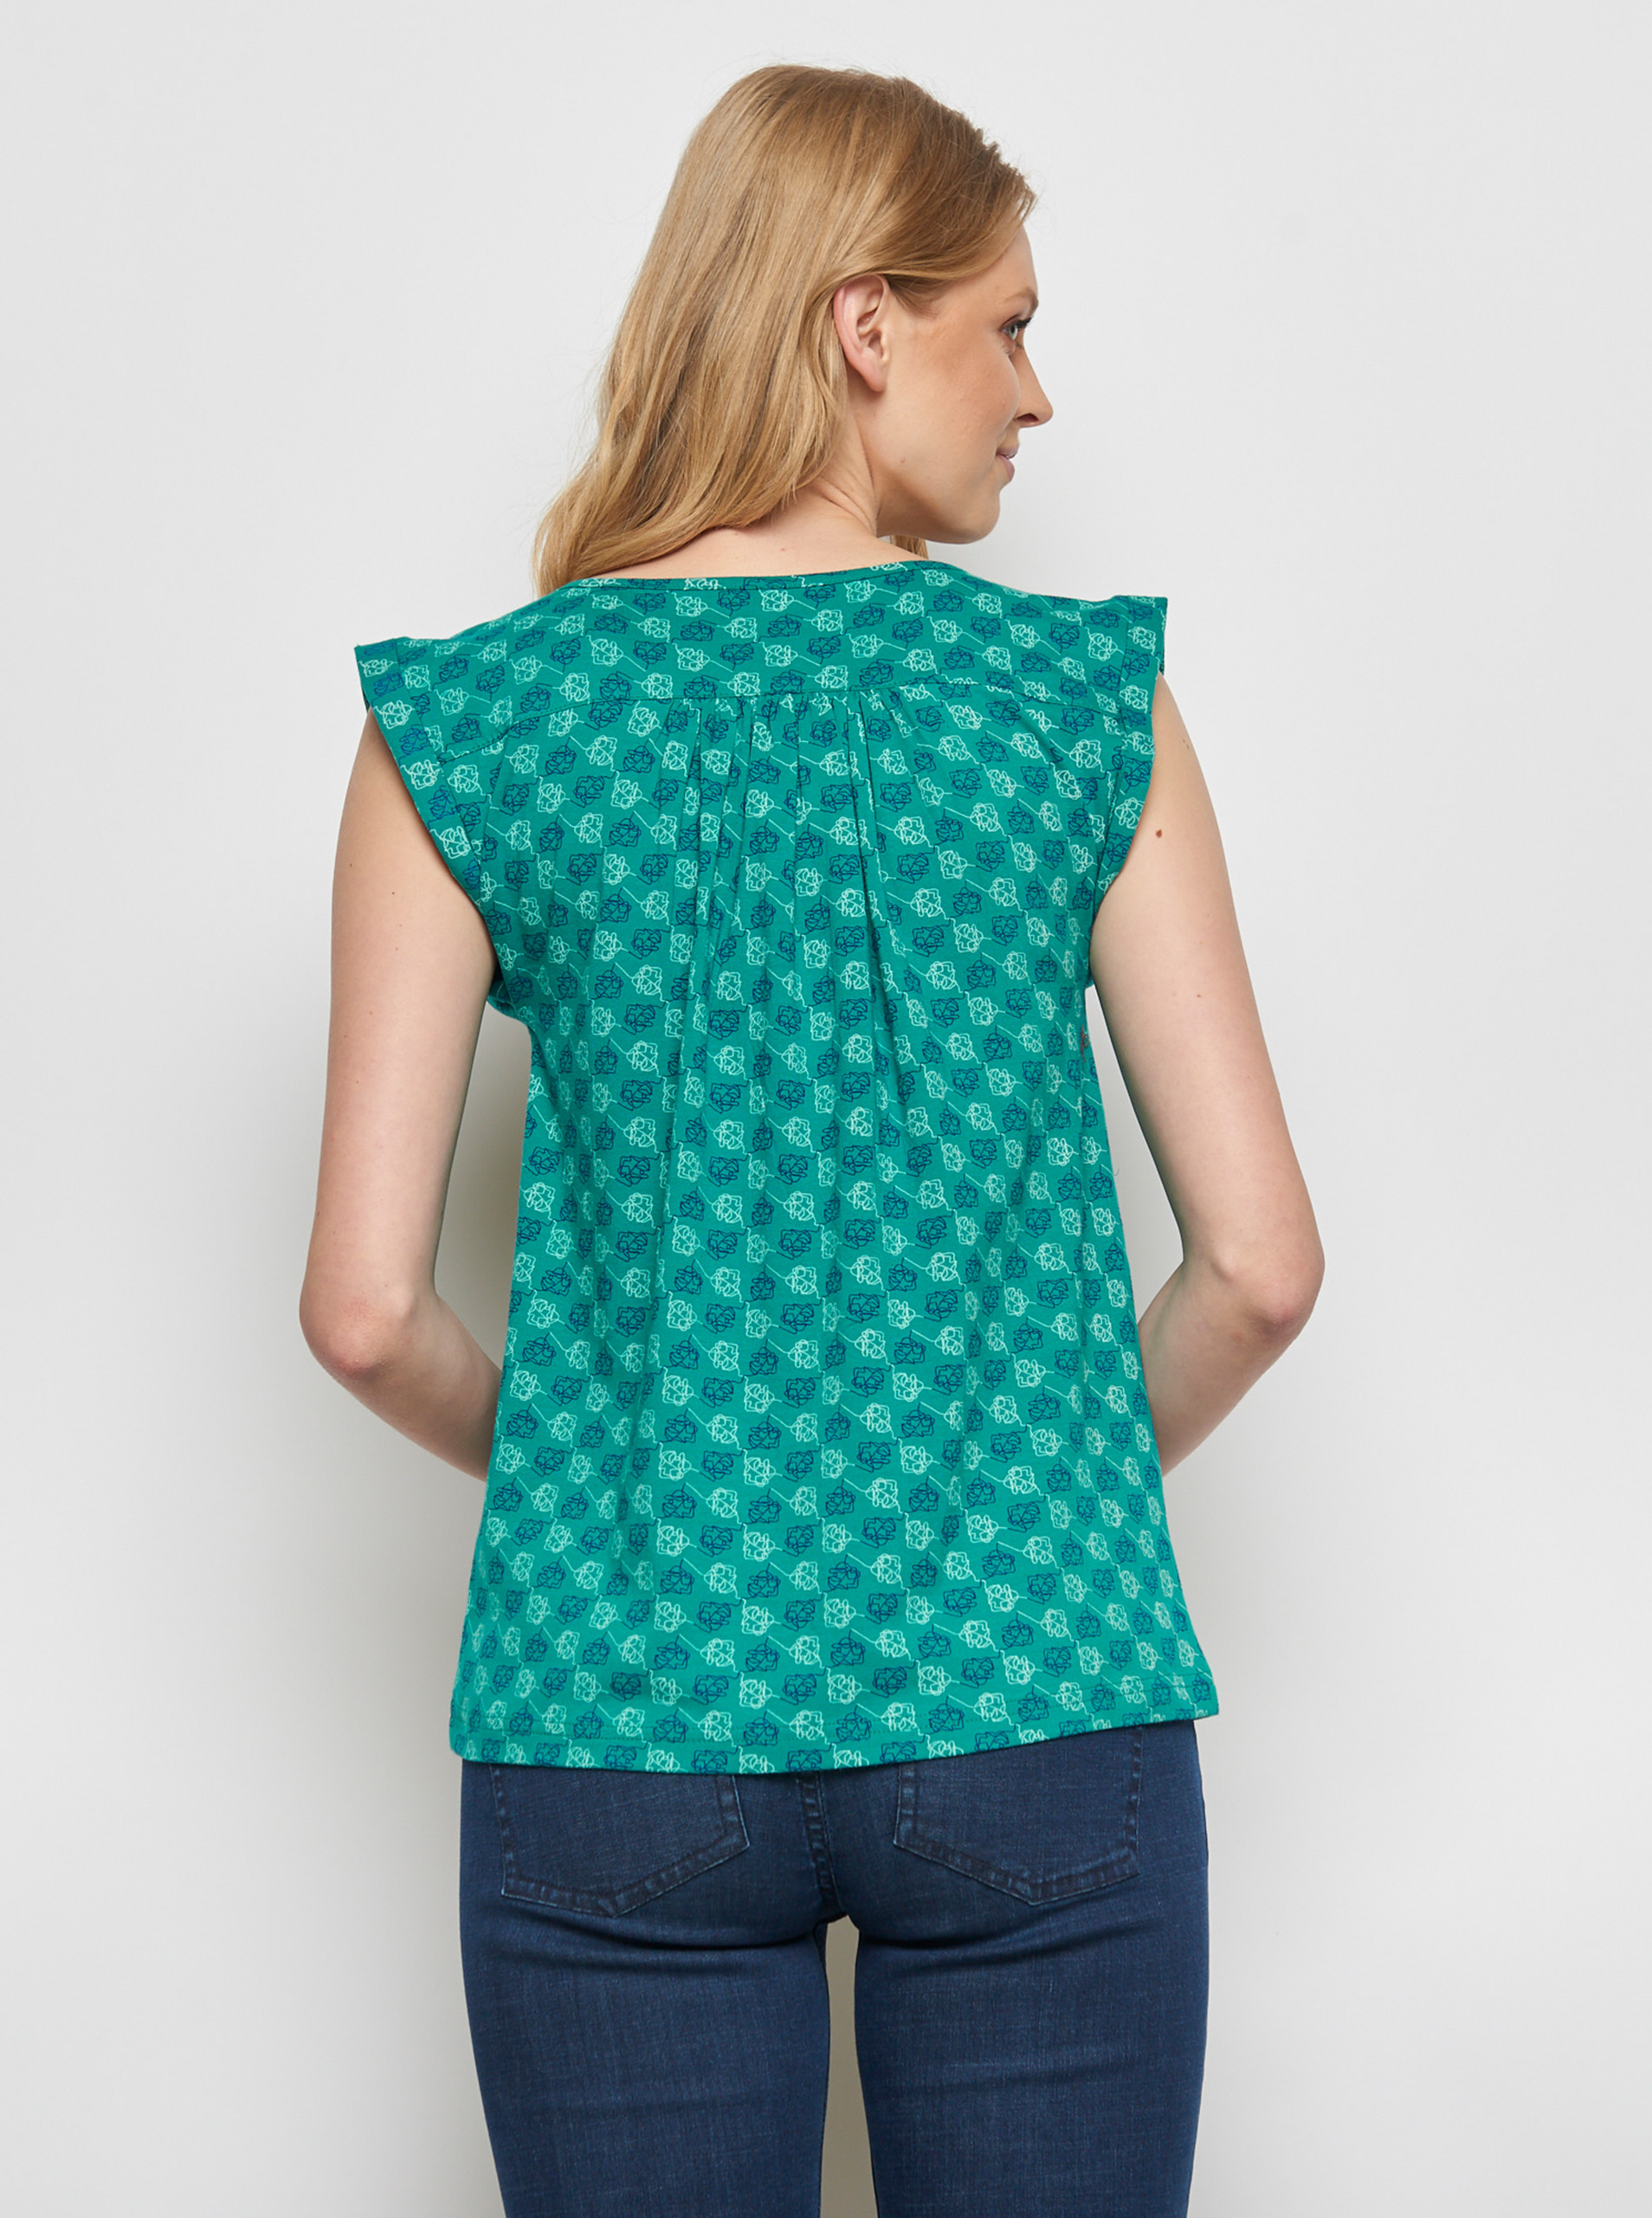 Tranquillo turquoise blouse Shani with pattern